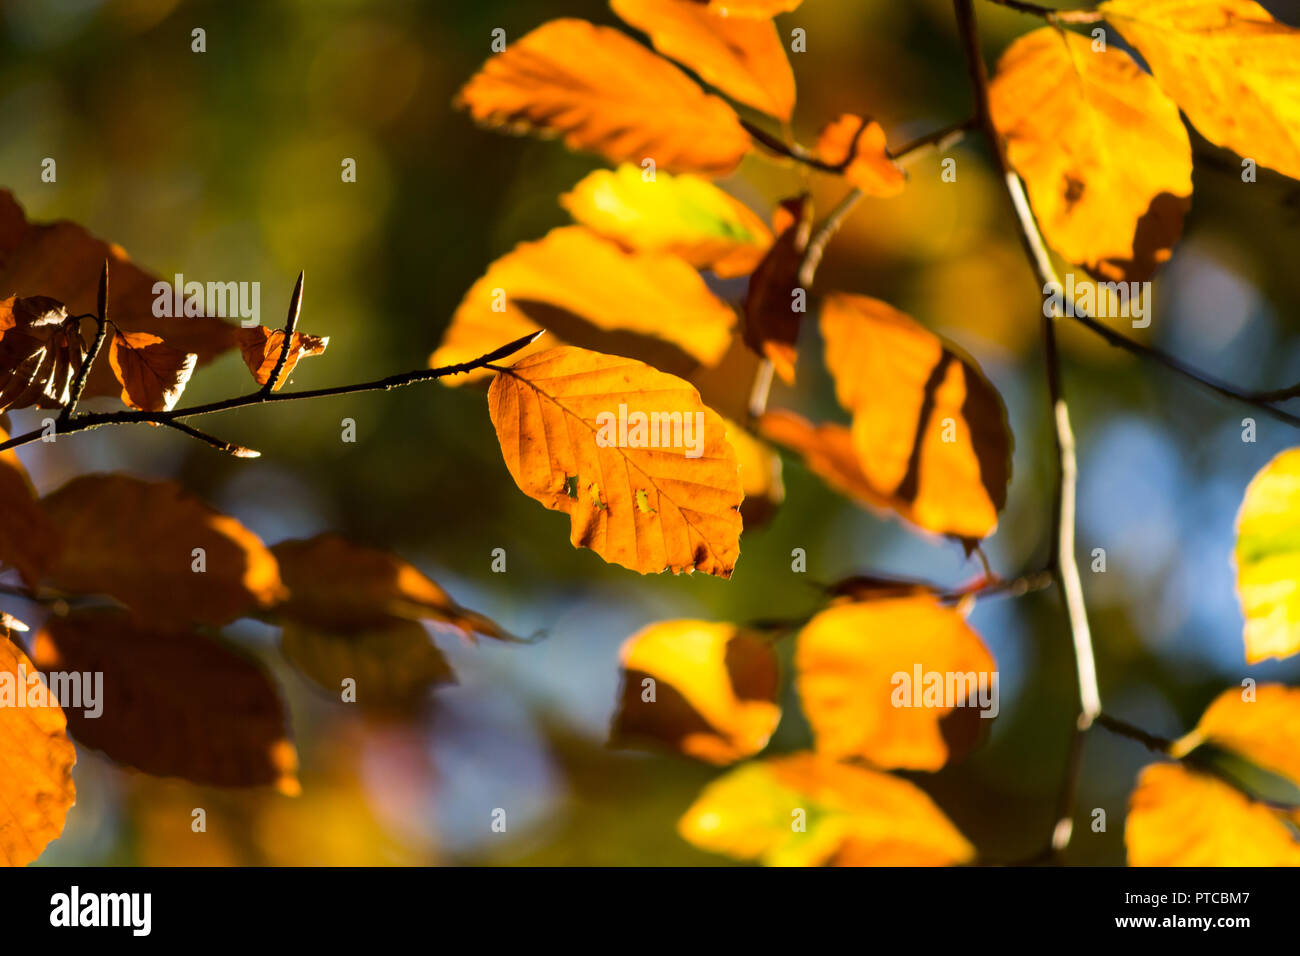 Copper brown red leaves on branches - Stock Image